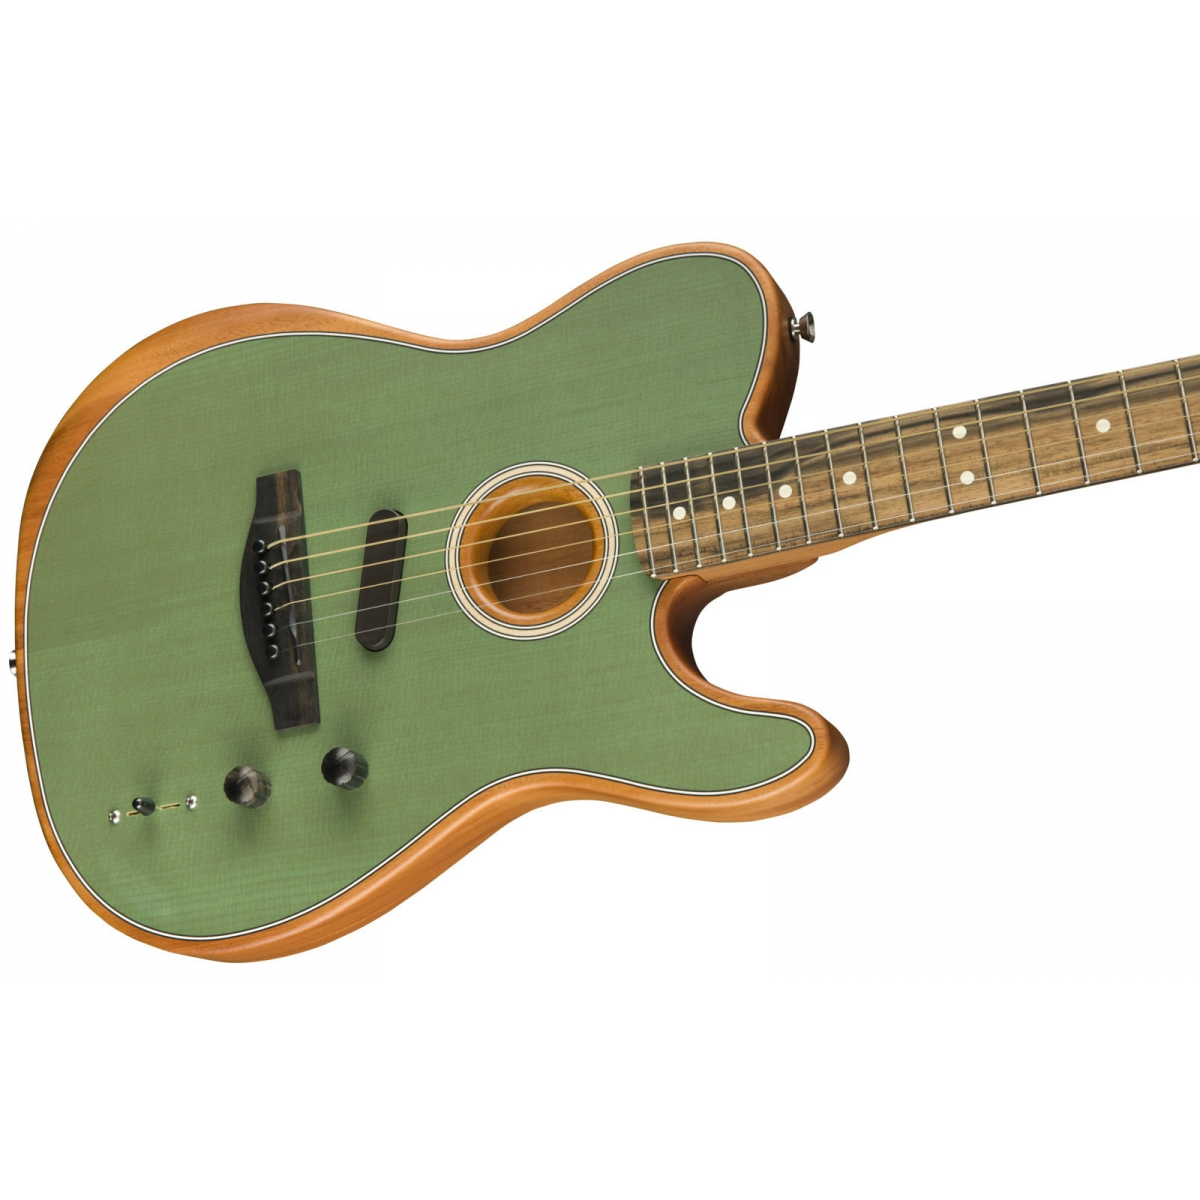 fender american acoustasonic telecaster seafoam green 0972013221 at promenade music. Black Bedroom Furniture Sets. Home Design Ideas